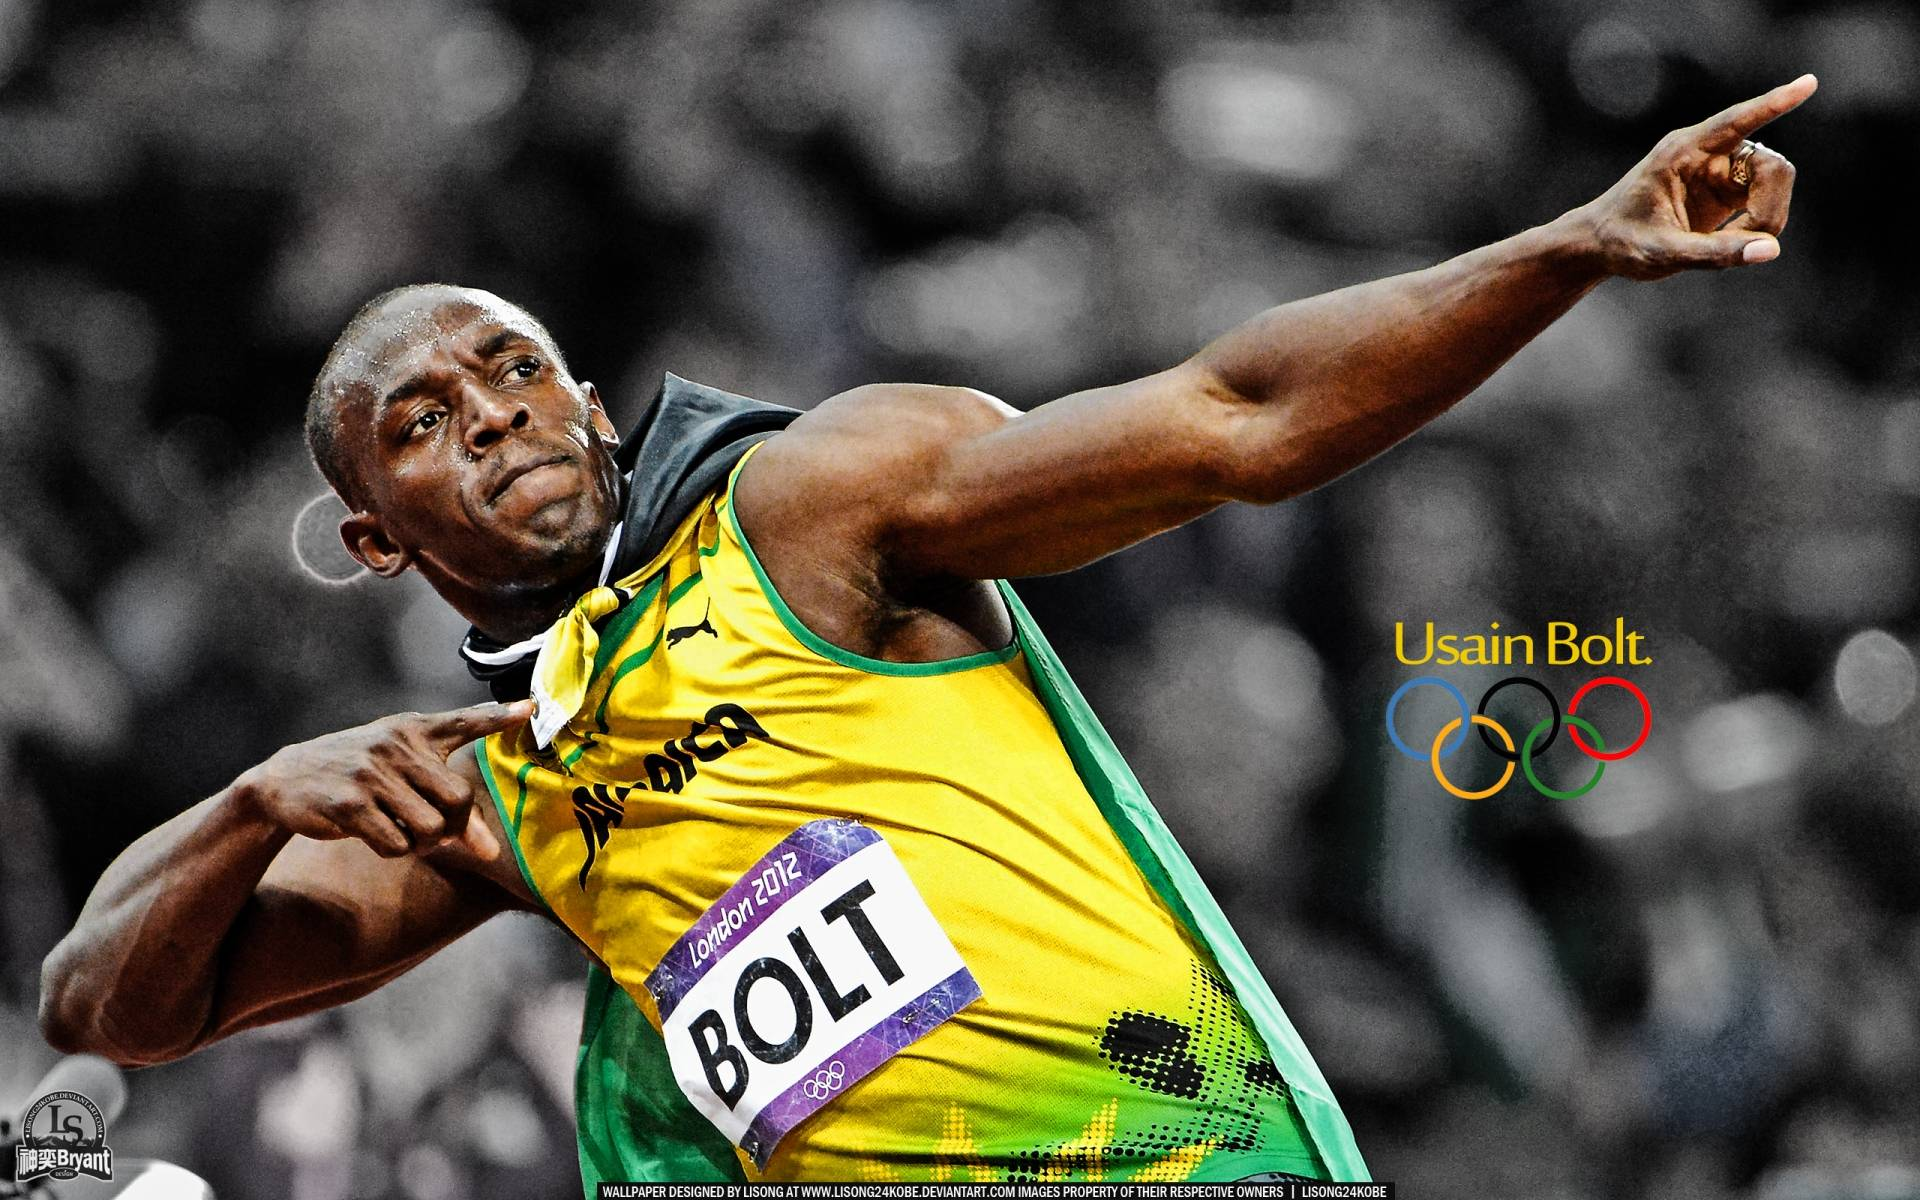 bolt wallpaper others movies 59 wallpapers � hd wallpapers